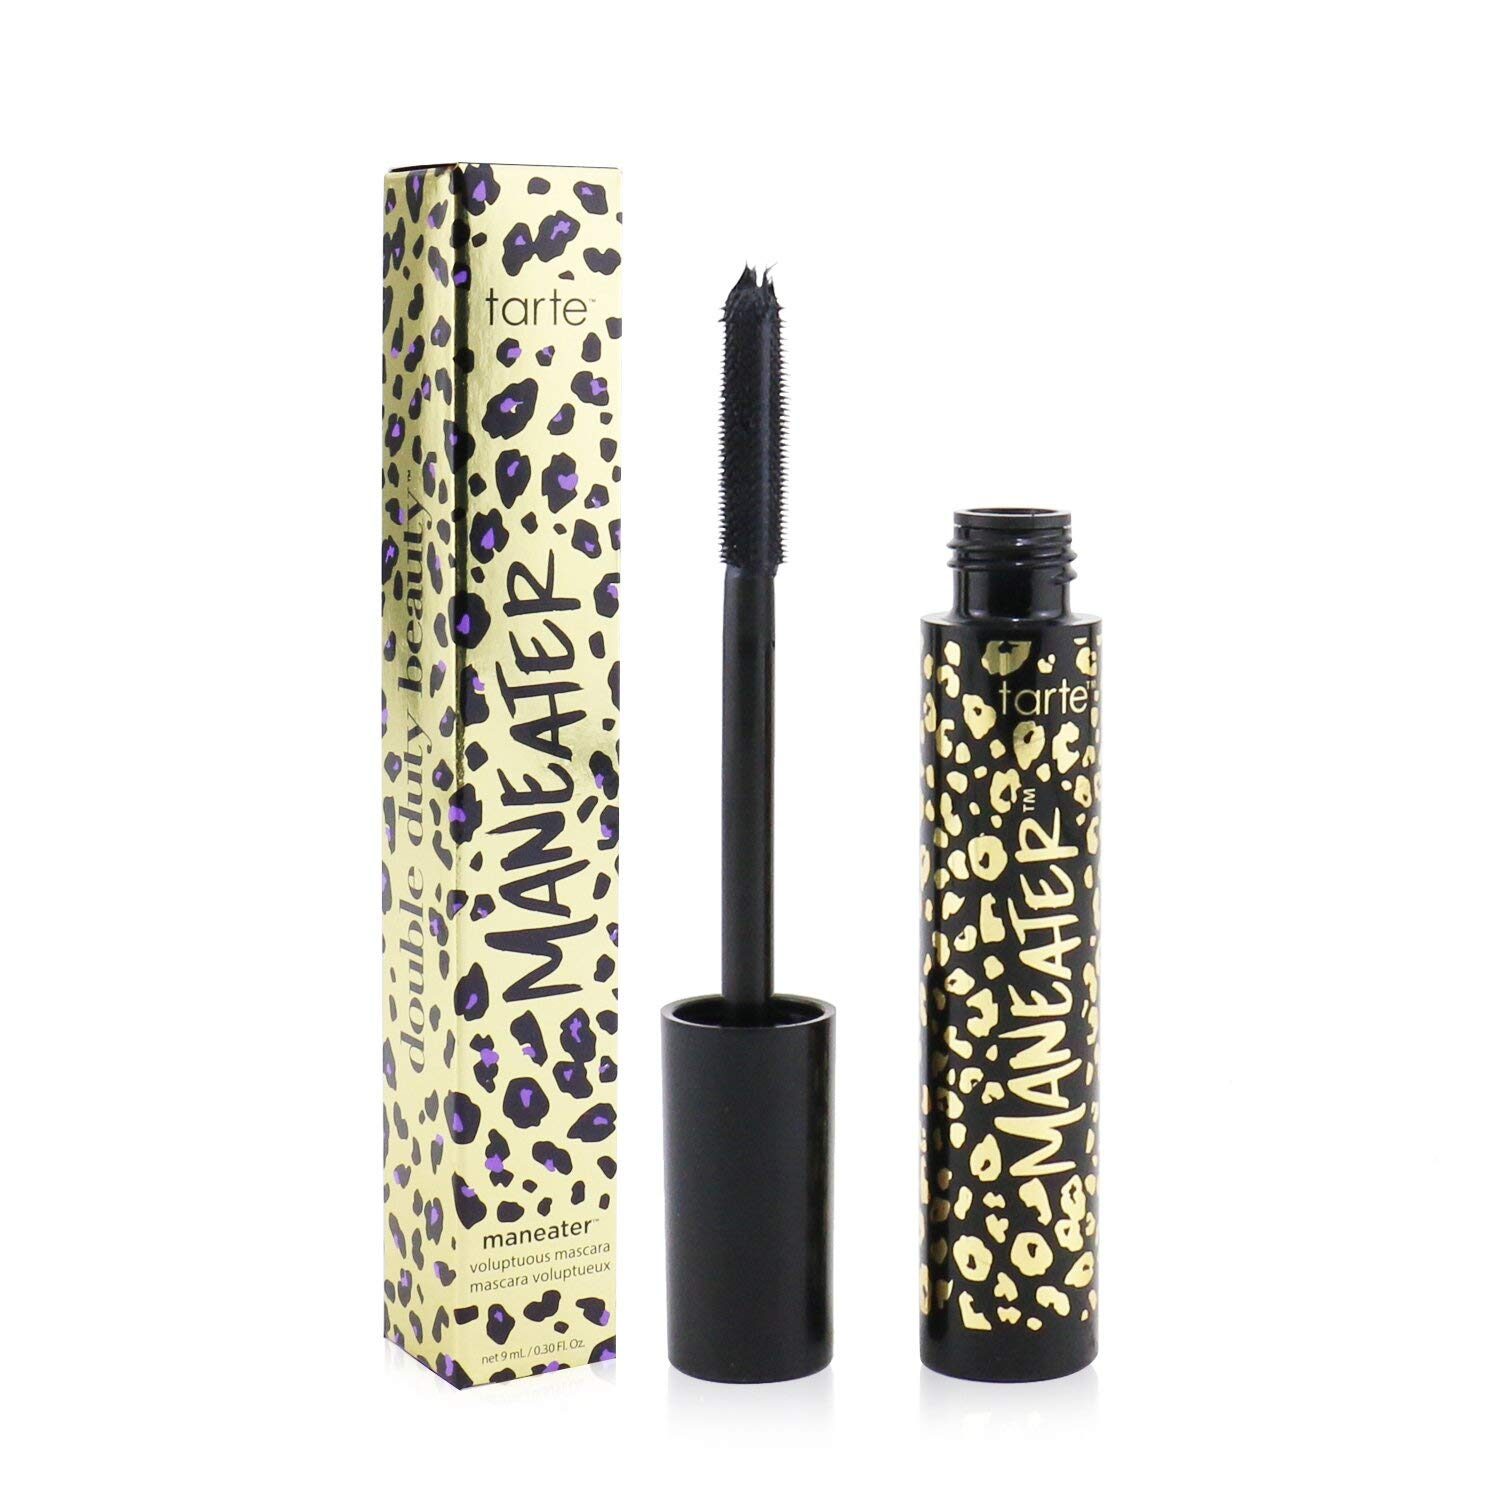 Tarte maneater mascara amazon